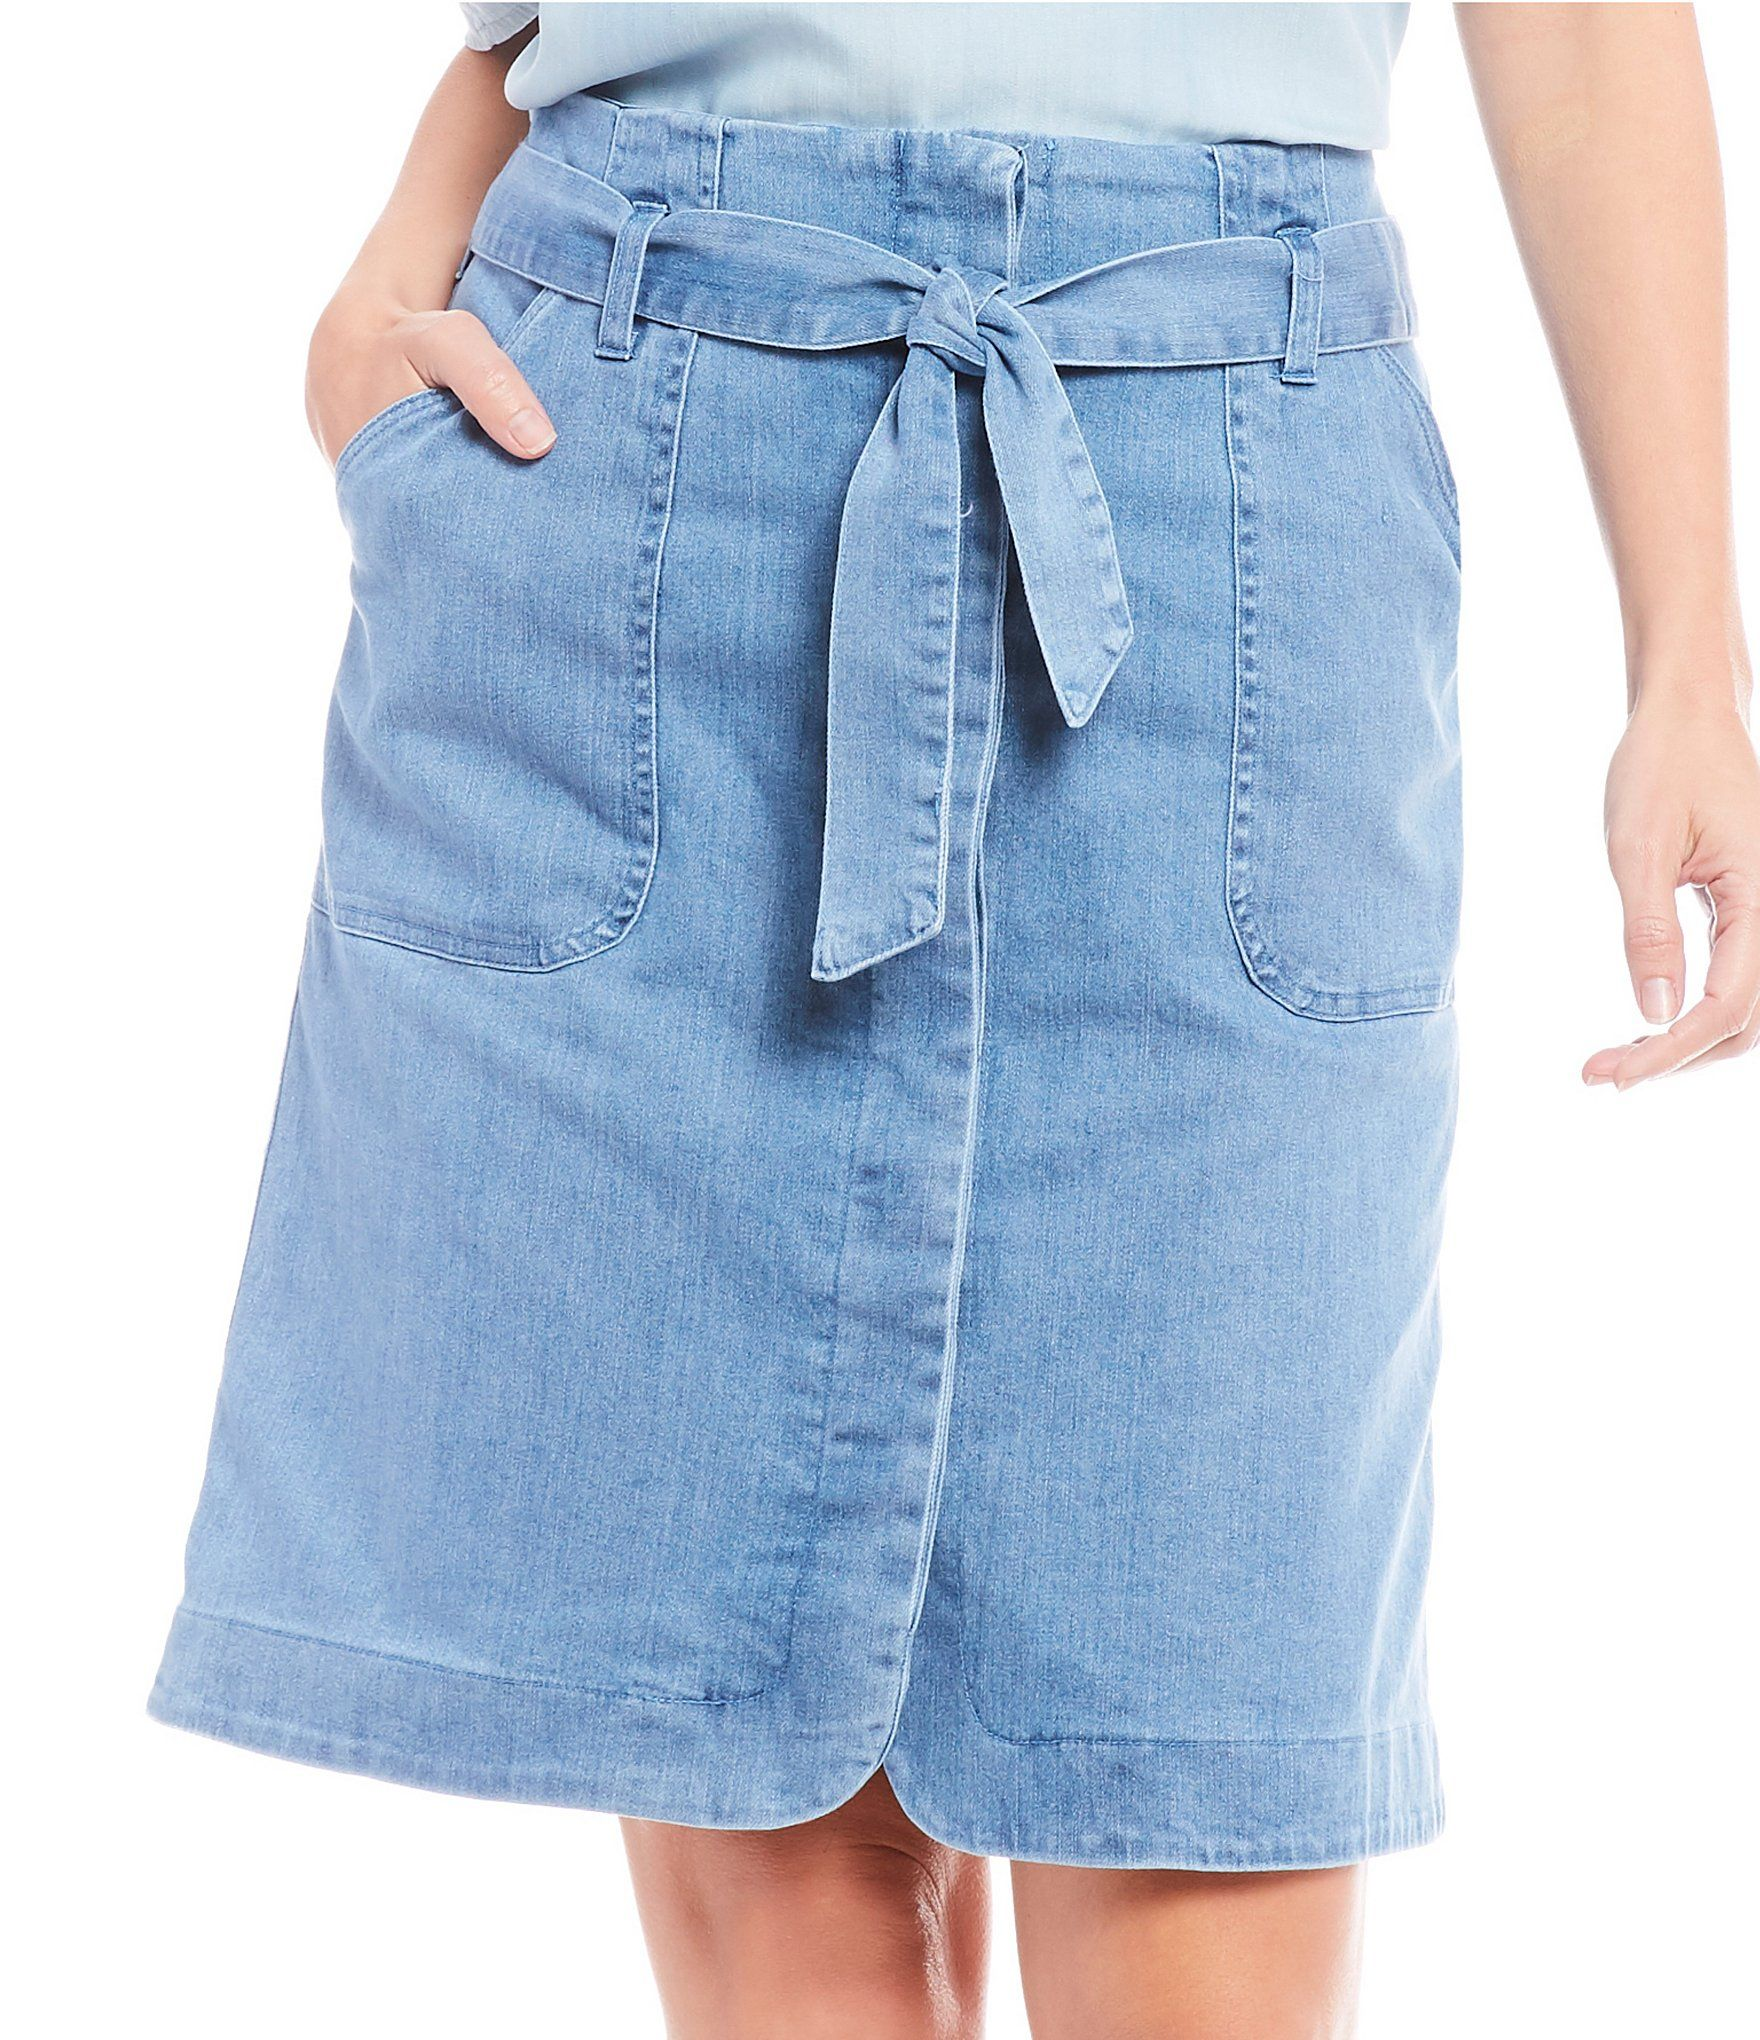 0c1b9d489d8 Jean Skirts At Dillards - Gomes Weine AG